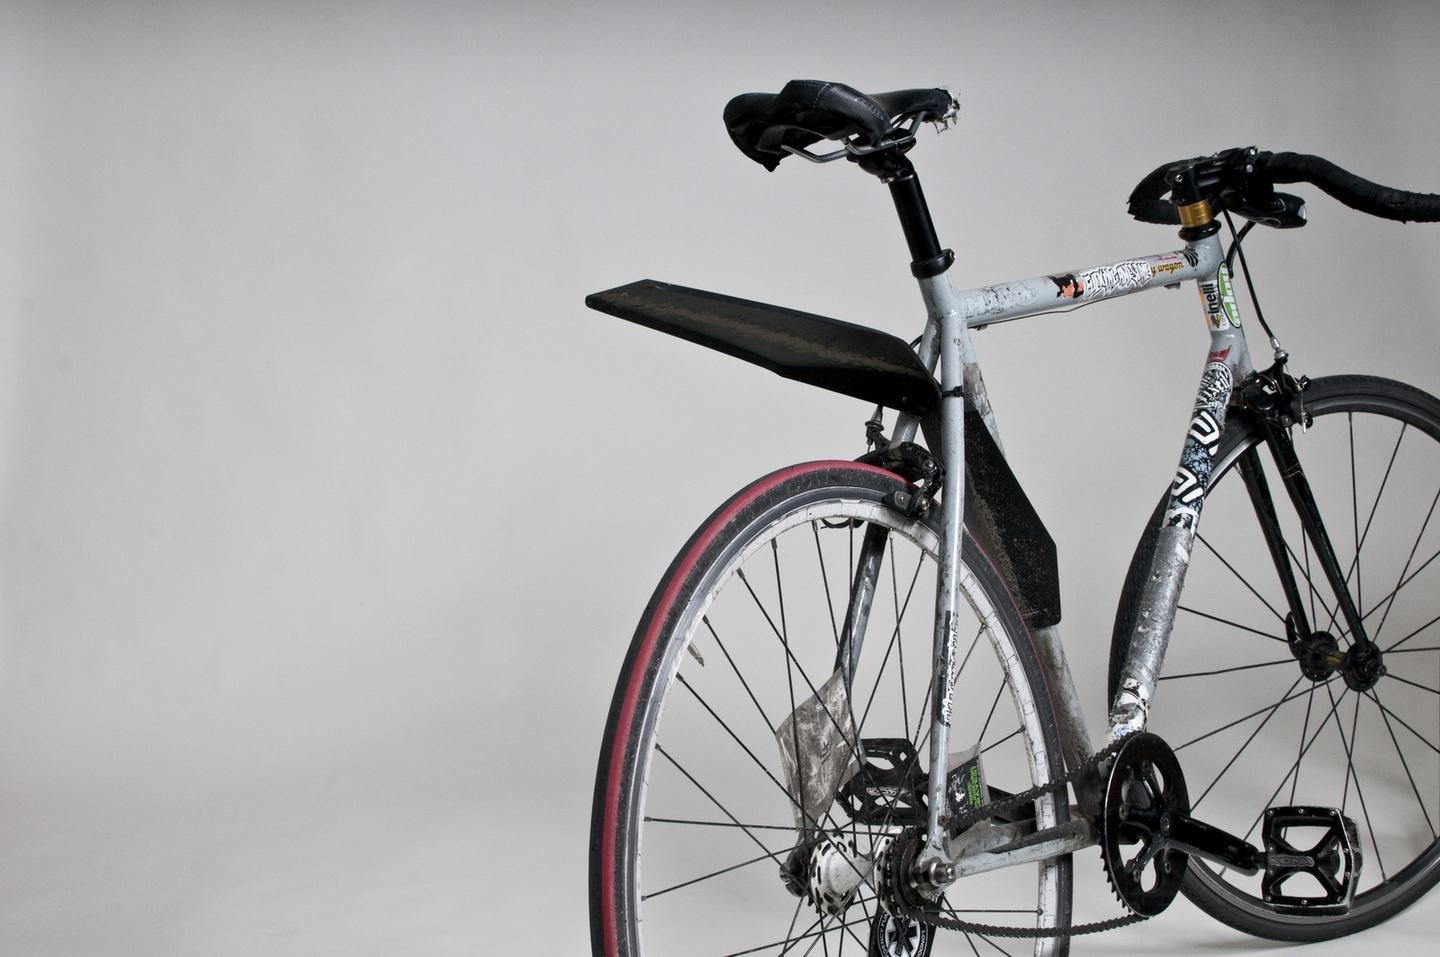 The QuickFix mudguard attaches to a bike in seconds, and packs flat when not in use